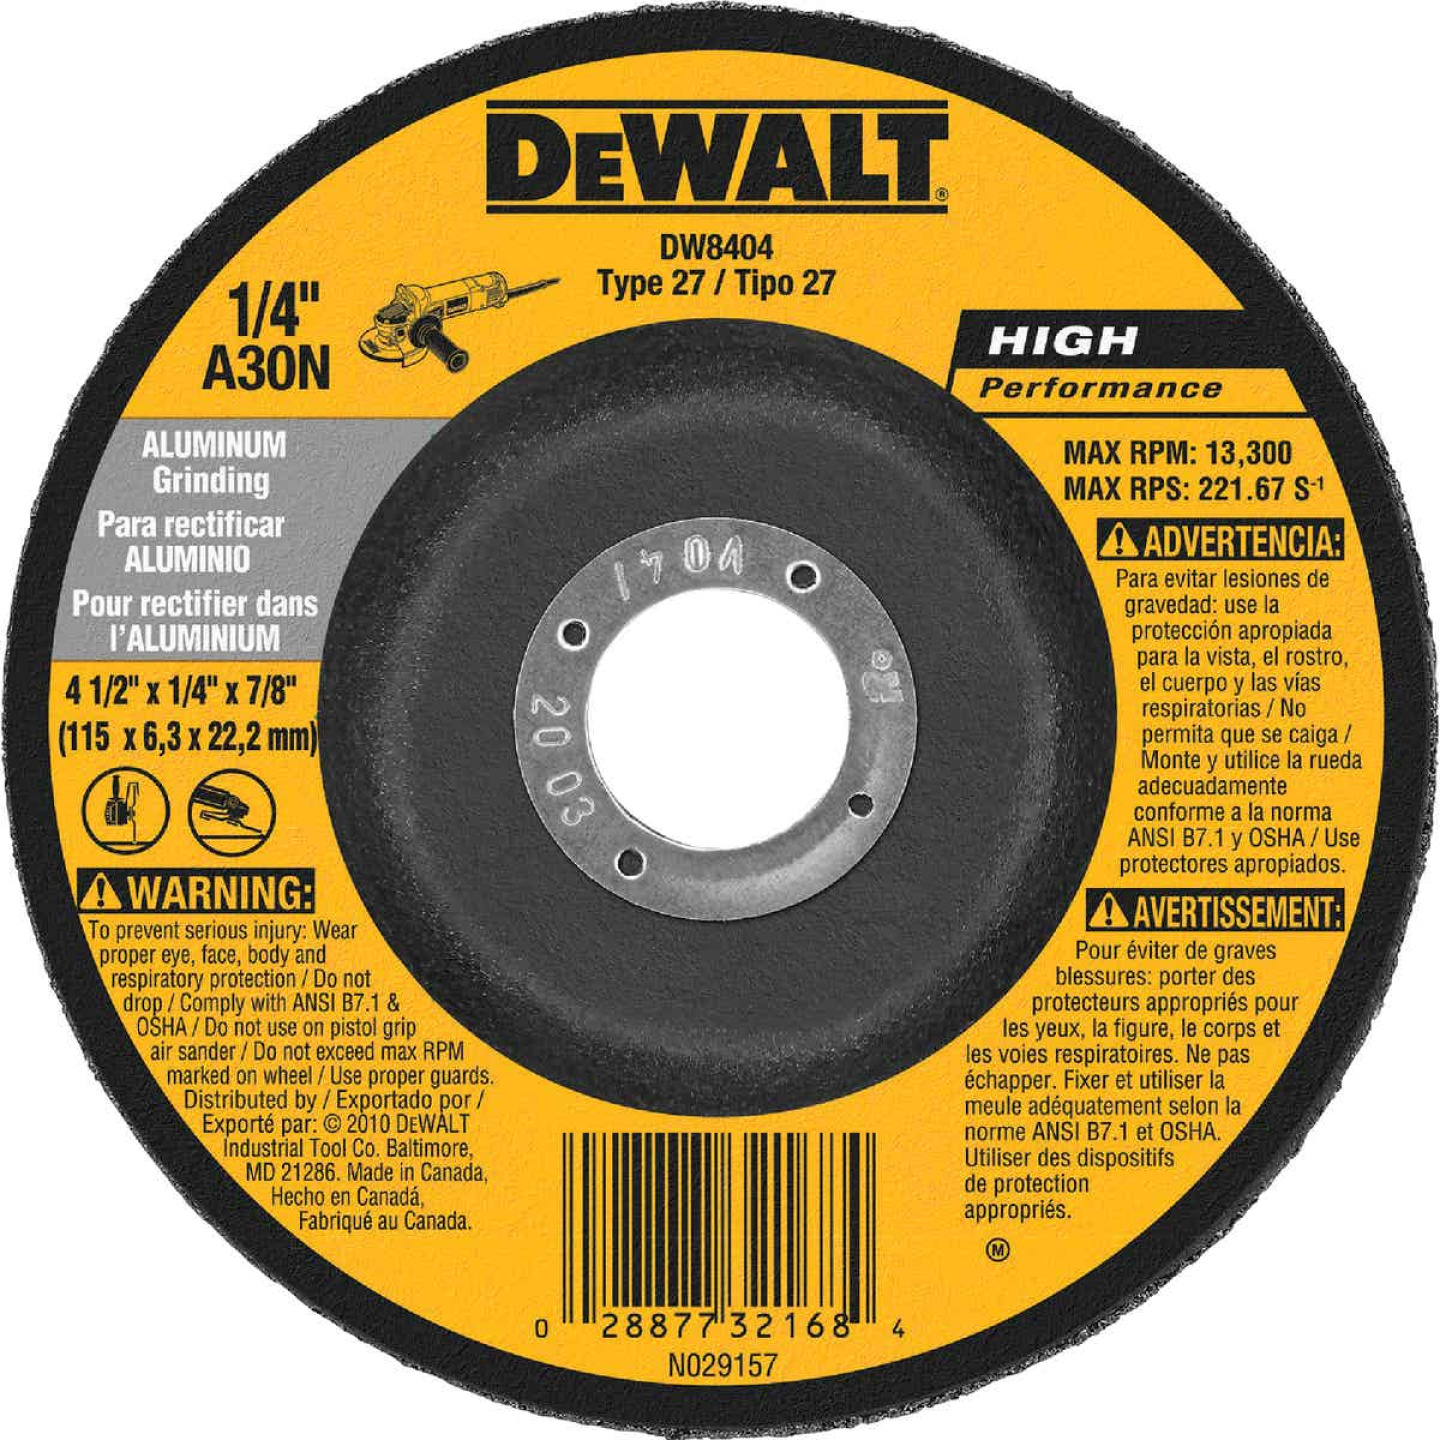 DeWalt HP Type 27 4-1/2 In. x 1/4 In. x 7/8 In. Aluminum Grinding Cut-Off Wheel Image 1